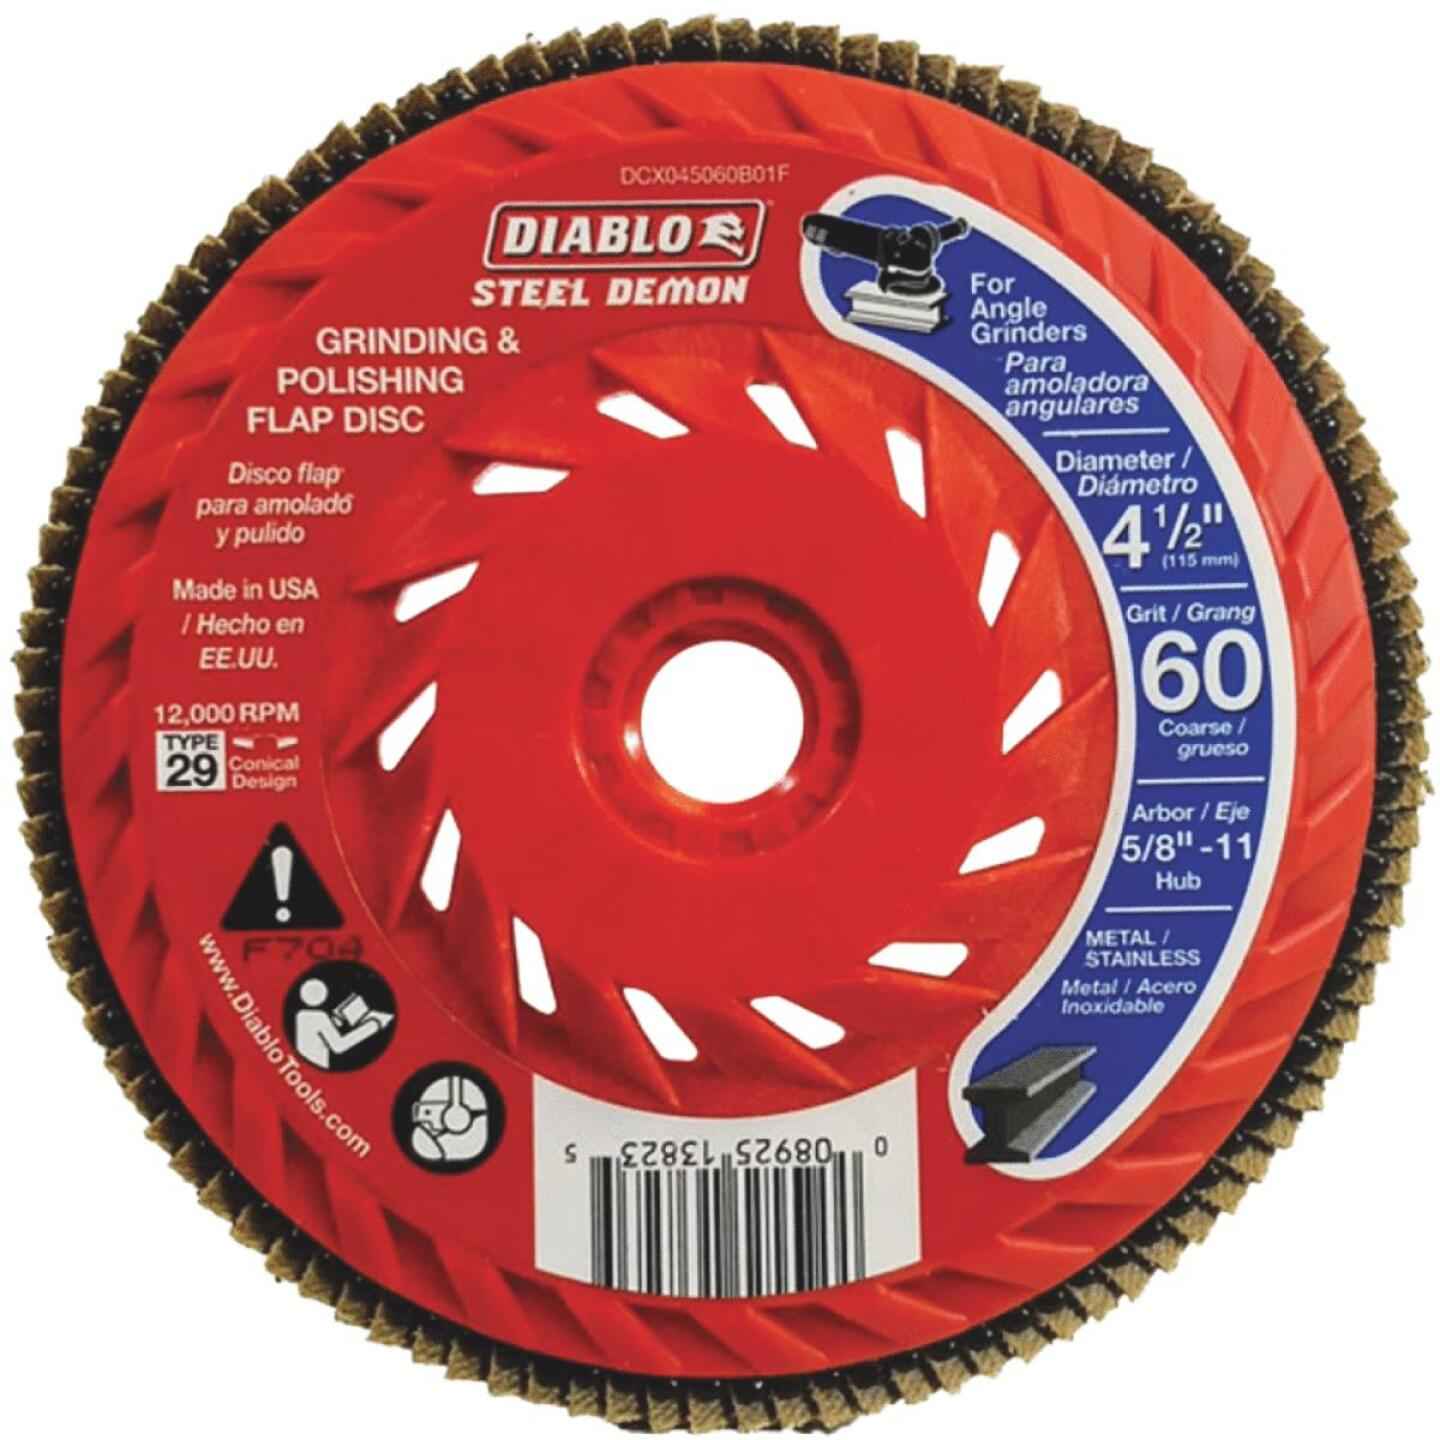 Diablo Steel Demon 4-1/2 In. x 5/8 In.-11 60-Grit Type 29 Angle Grinder Flap Disc with Hub Image 1